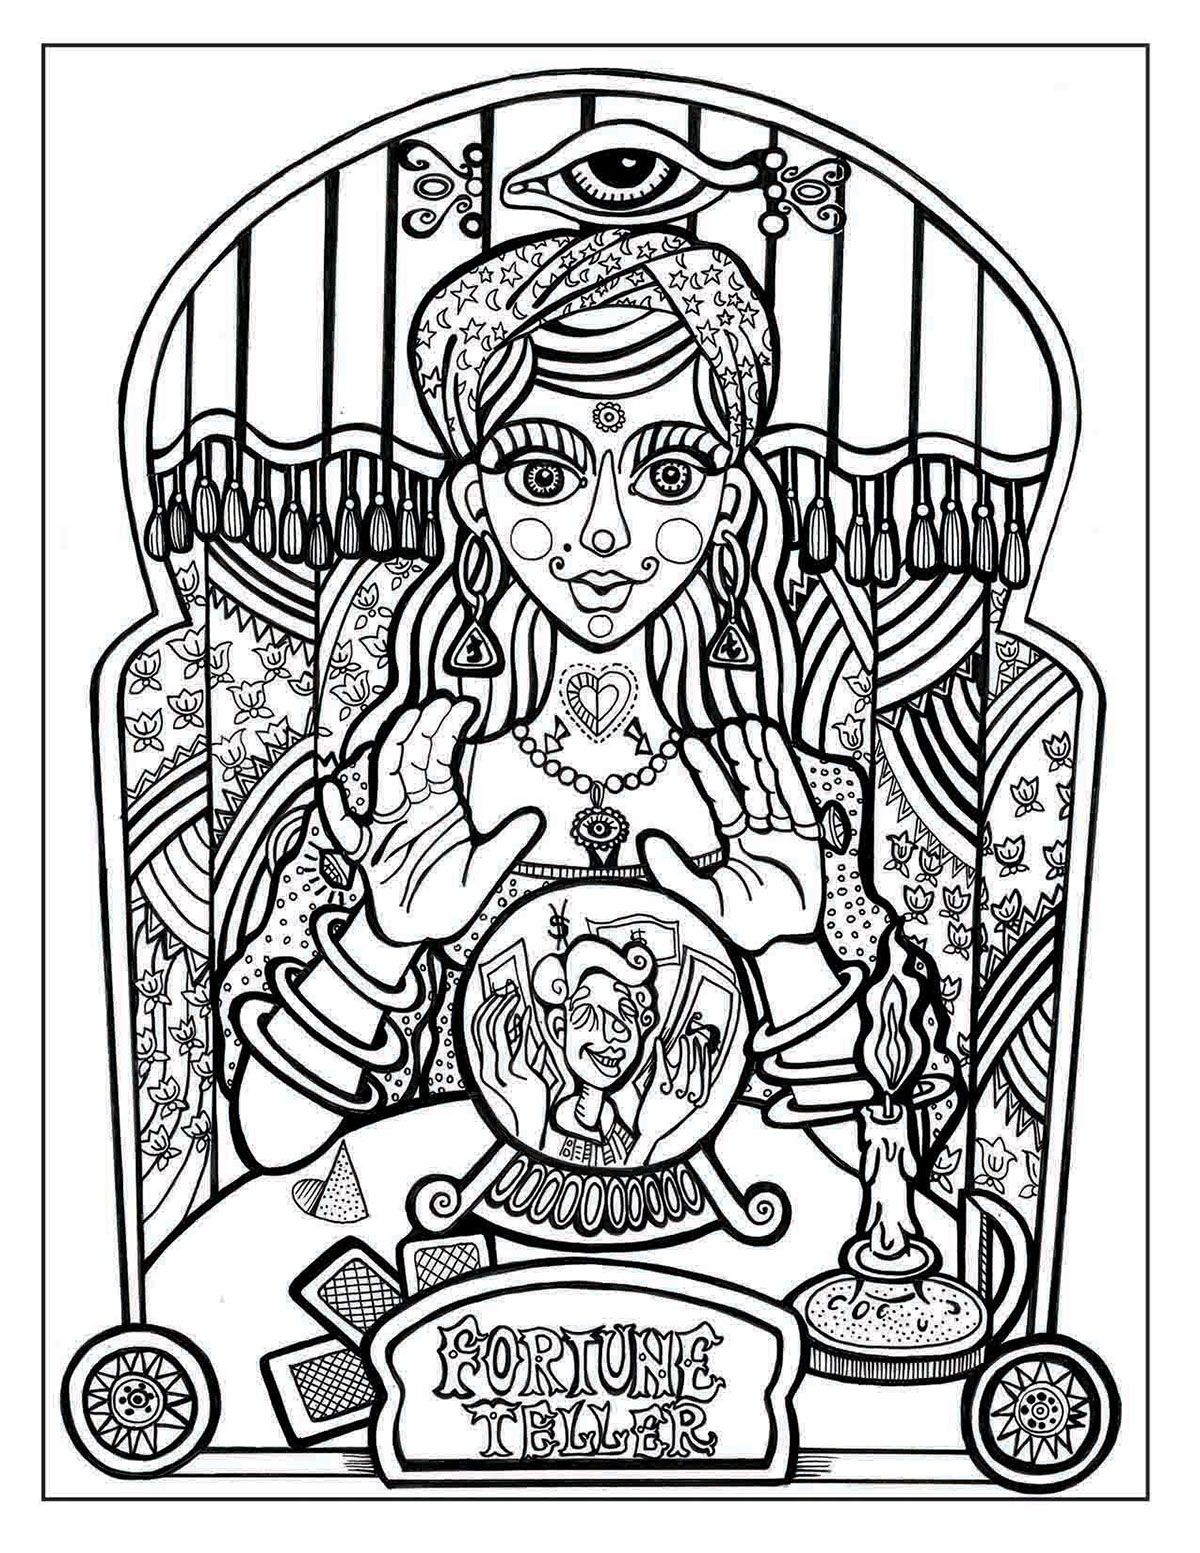 A Day At The Circus On Behance Cool Coloring Pages Adult Coloring Pages Coloring Pages